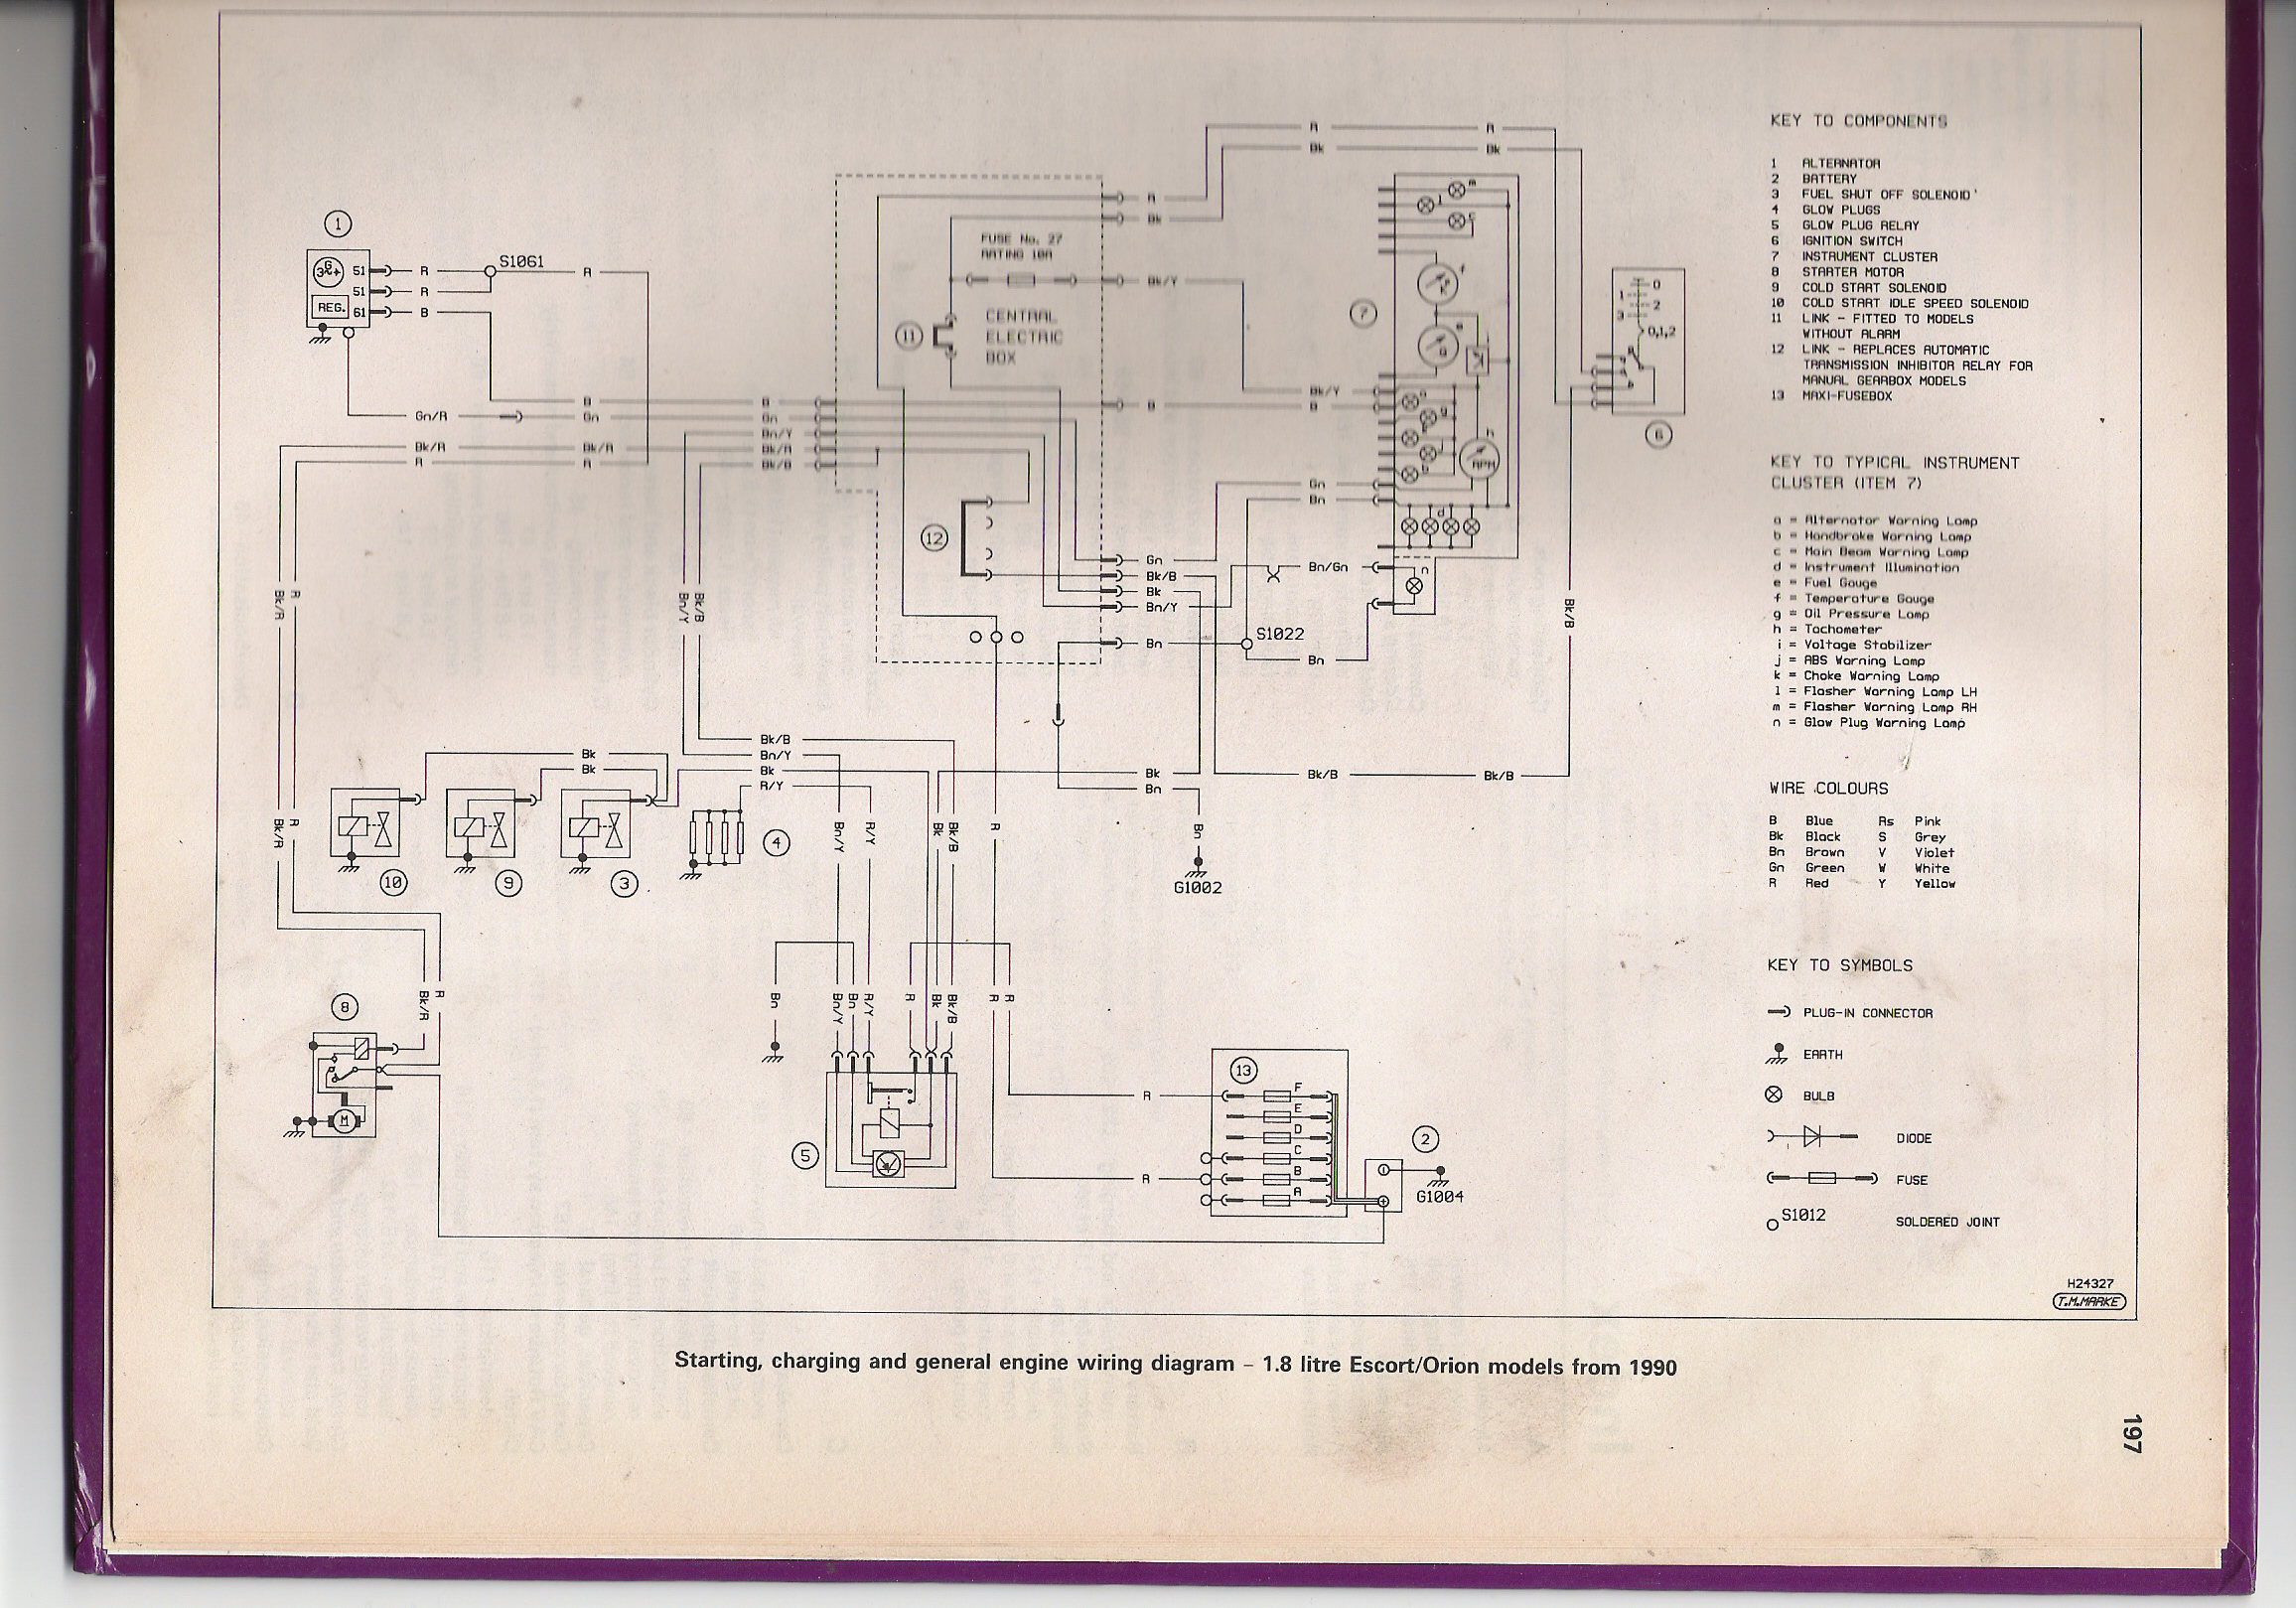 fordwiringdl mk4 wiring diagram wiring diagram for mk4 jetta power seats escort mk1 wiring diagram at metegol.co